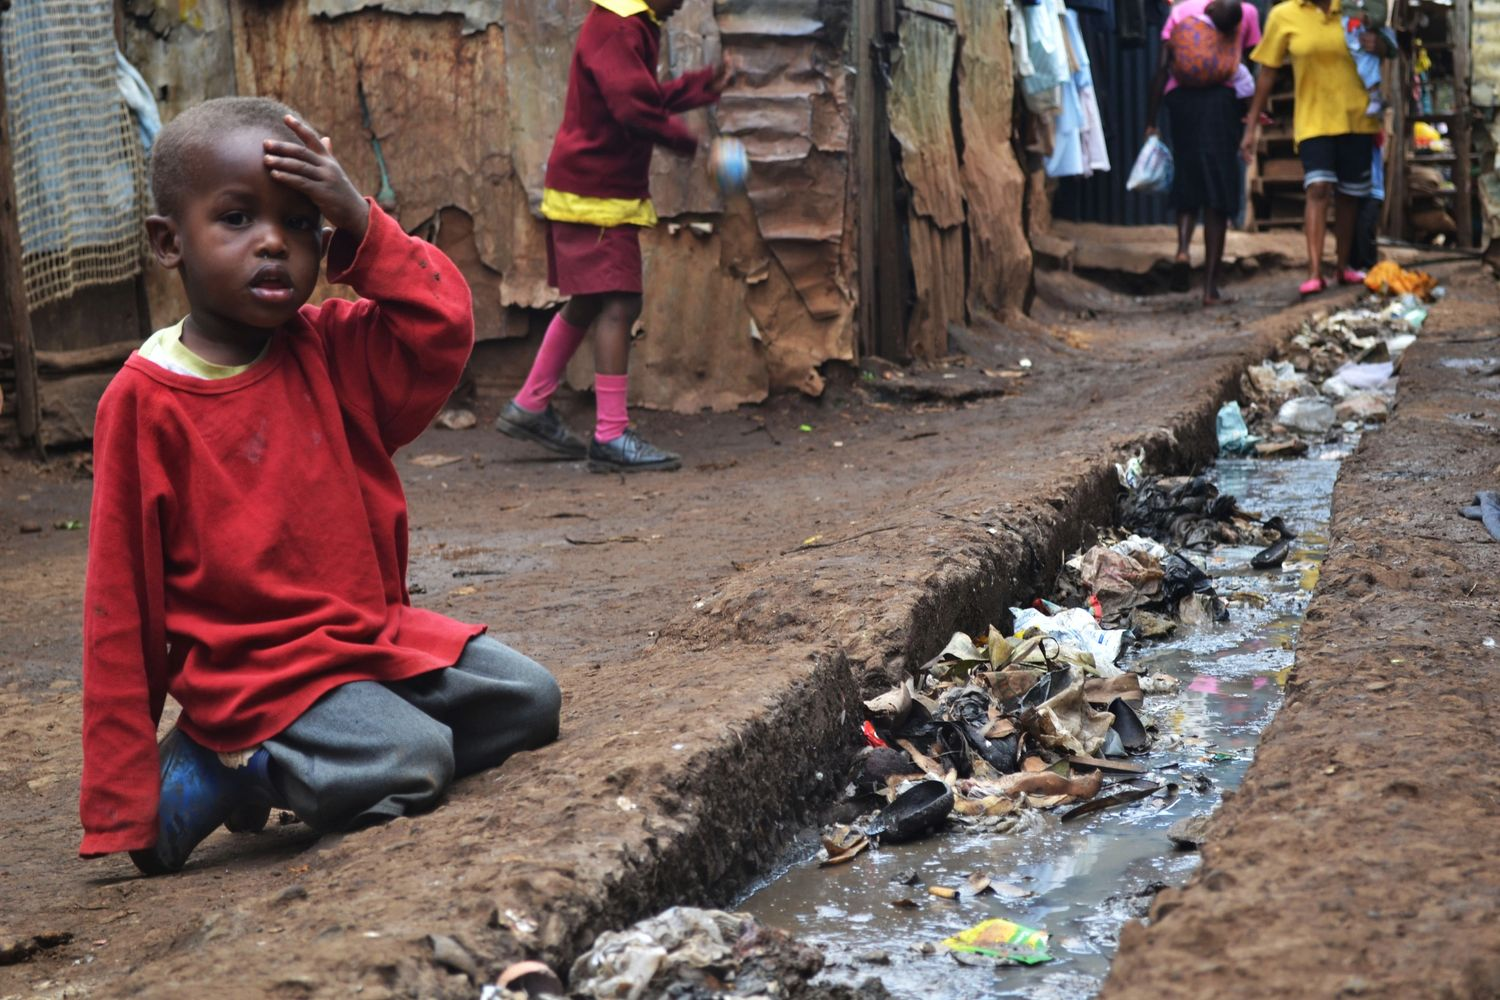 Child In The Kibera Slum, Kenya